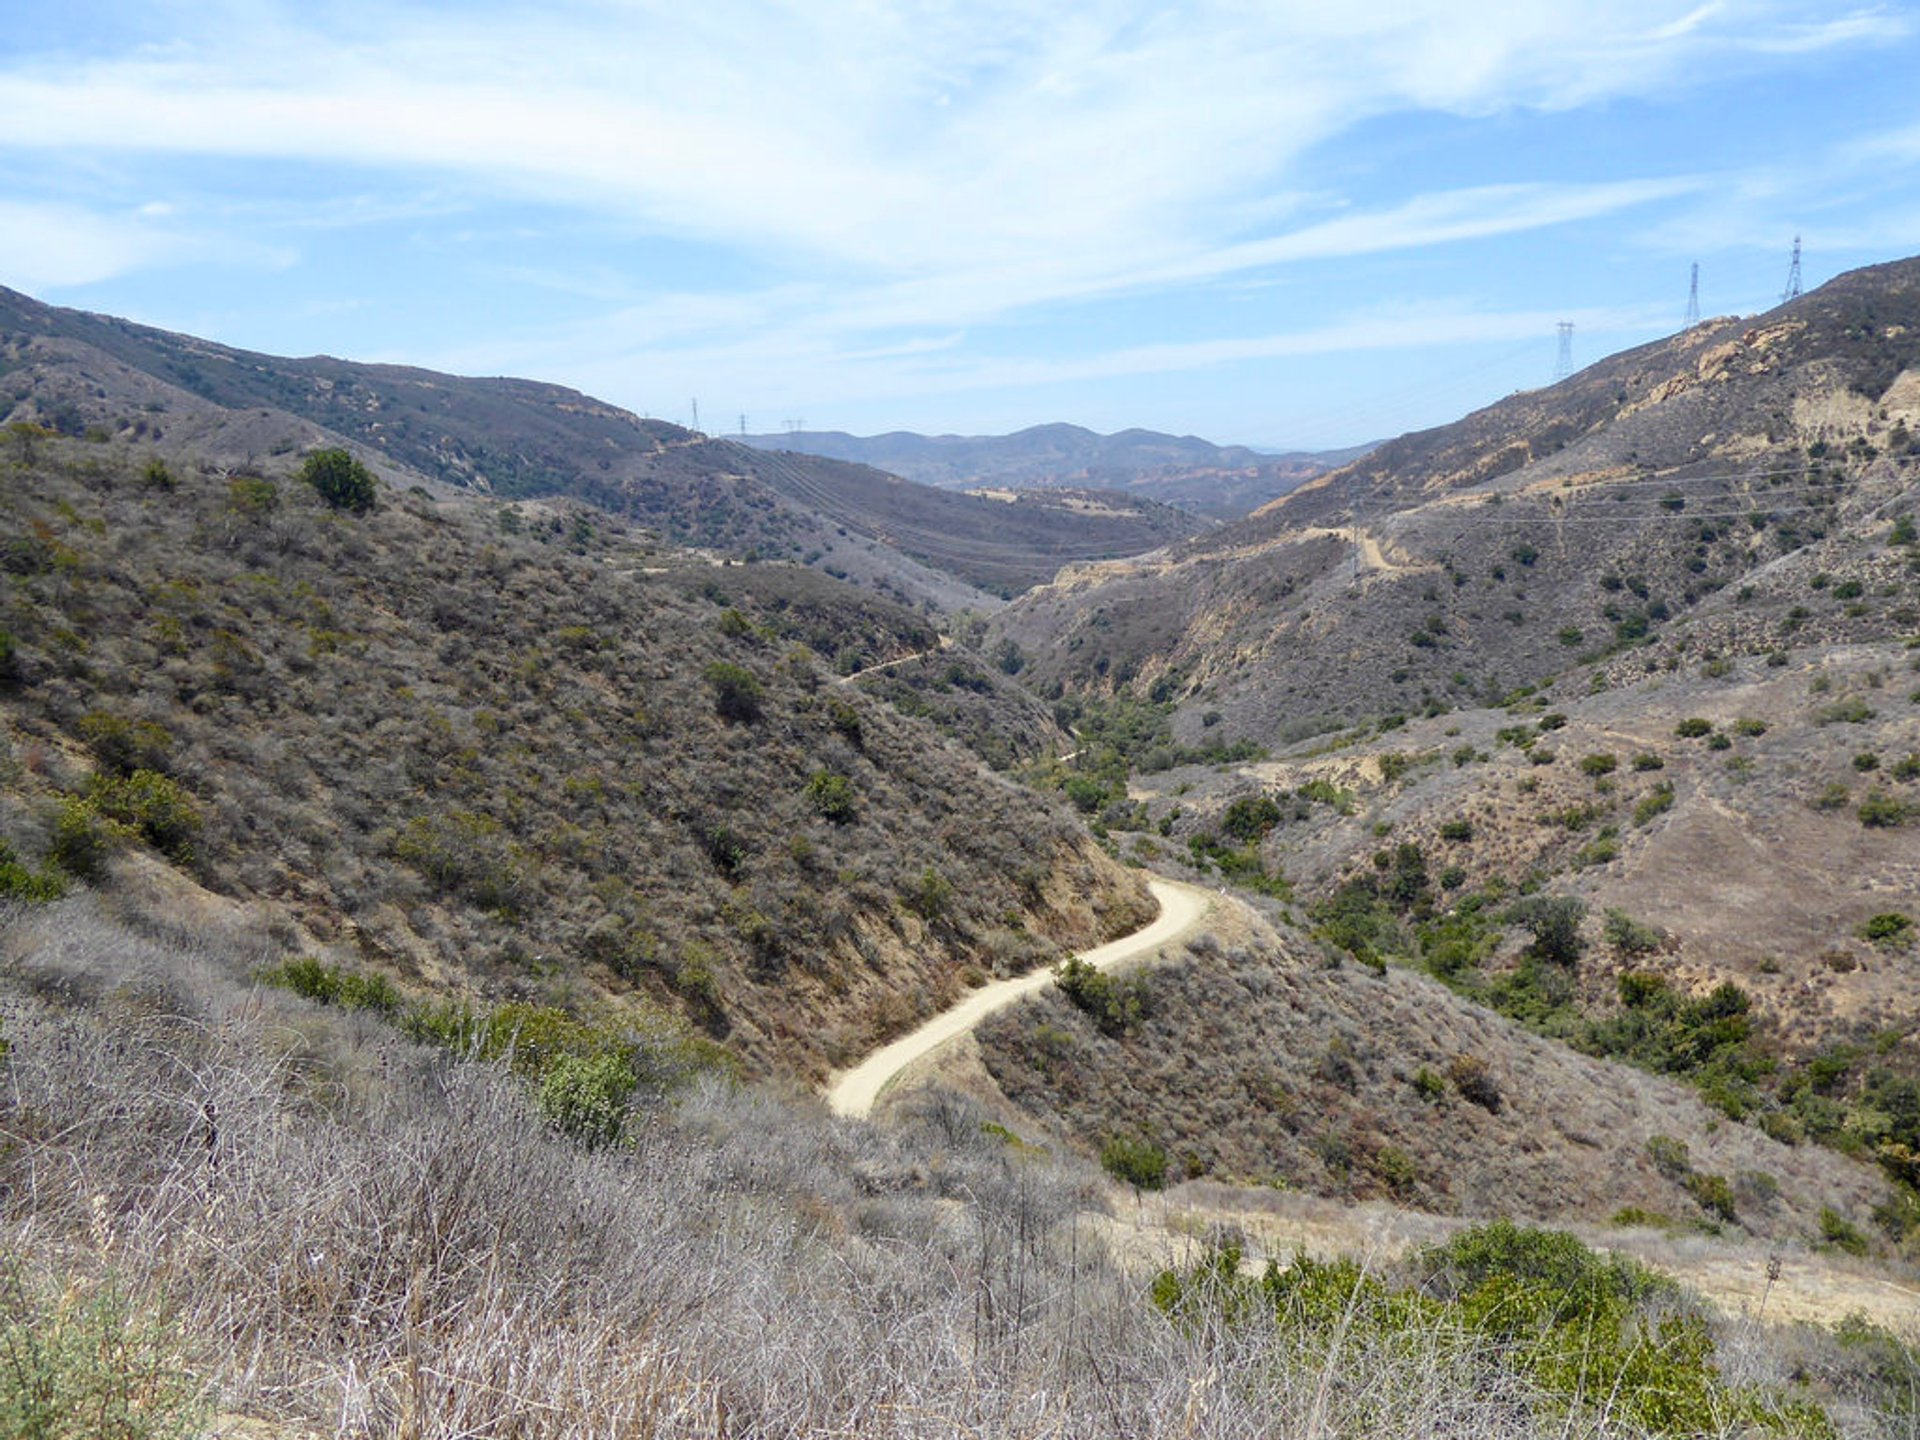 Black Star Canyon Hike in California 2020 - Best Time